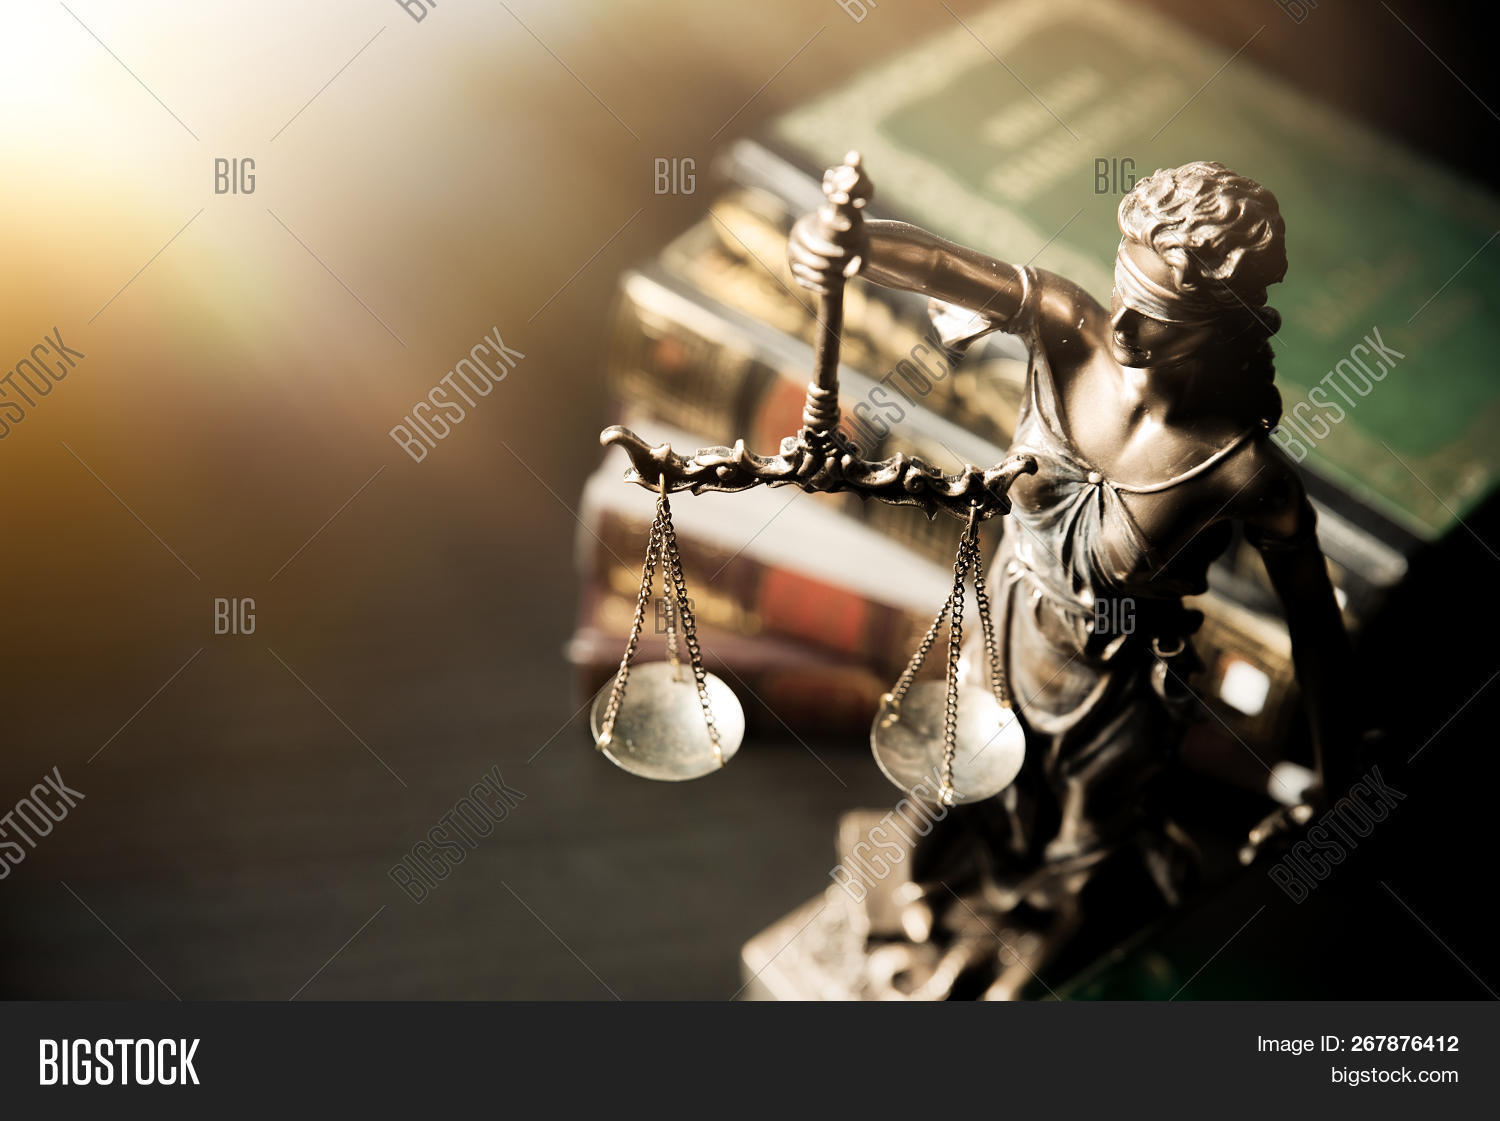 admonition,advice,attorney,authority,background,balance,barrister,blind,book,bronze,business,concept,court,courtroom,crime,debt,expenses,female,figure,finance,freedom,government,guilty,innocence,judge,judical,justice,justitia,lady,law,lawyer,legal,legislation,light,office,person,process,prosecution,punishment,scale,sculpture,service,statue,study,sunlight,symbol,themis,tribunal,university,woman